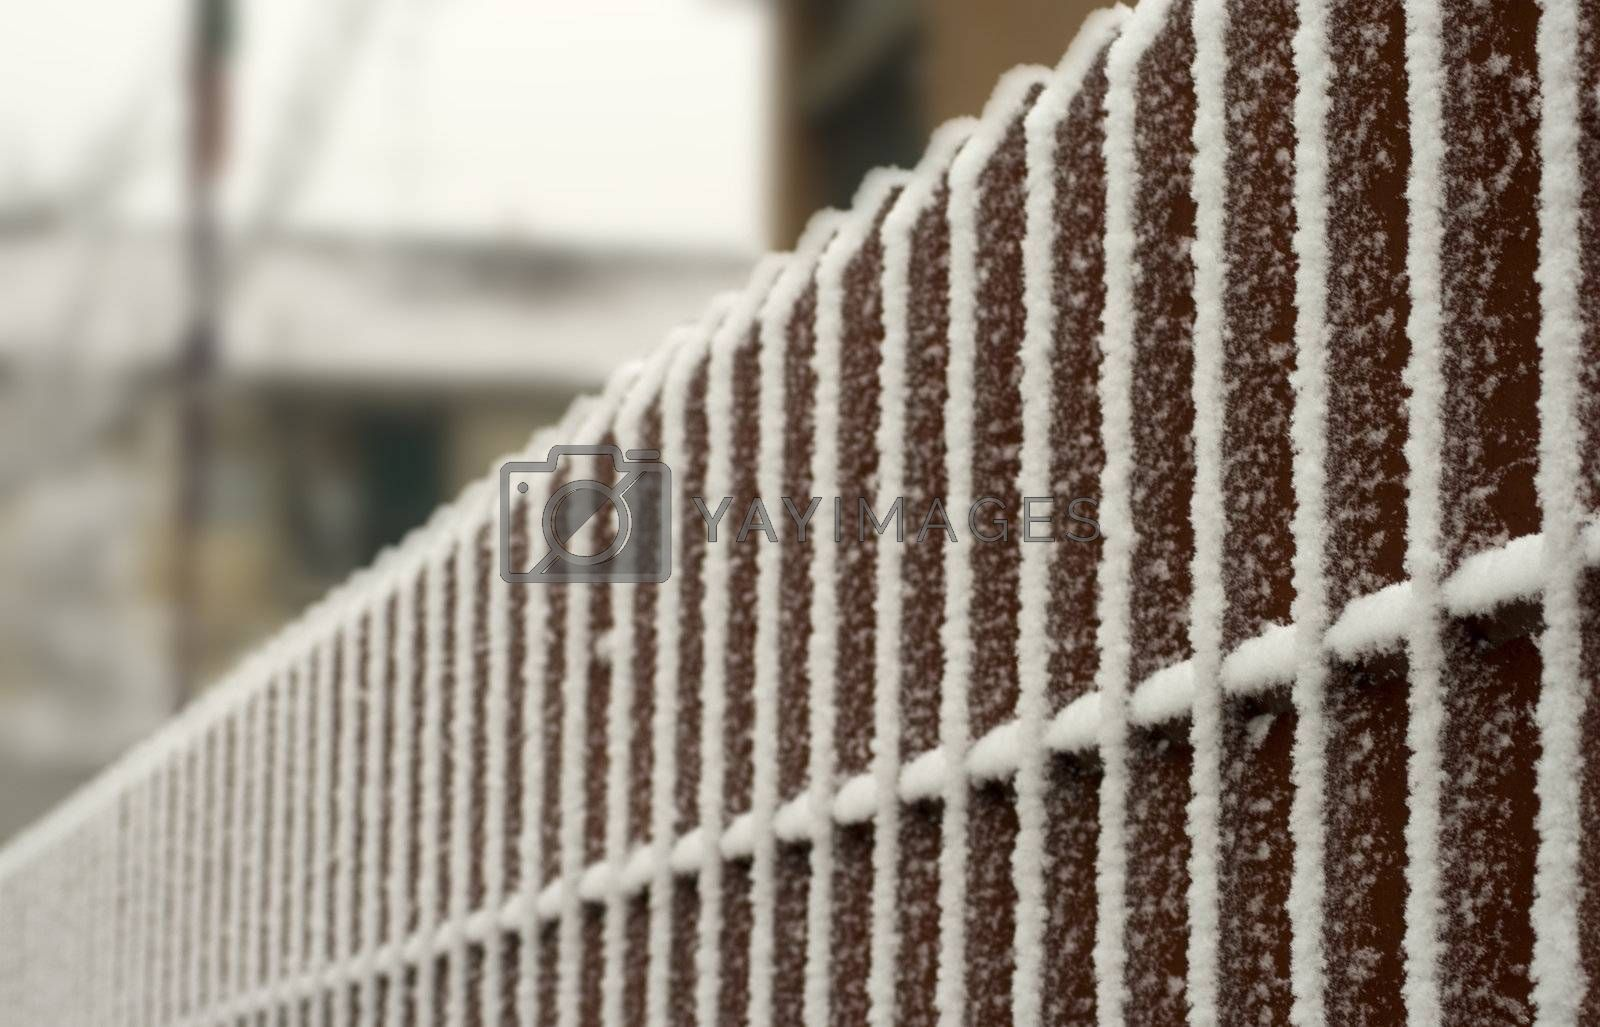 Snow on vertical bar of a fence by Koufax73